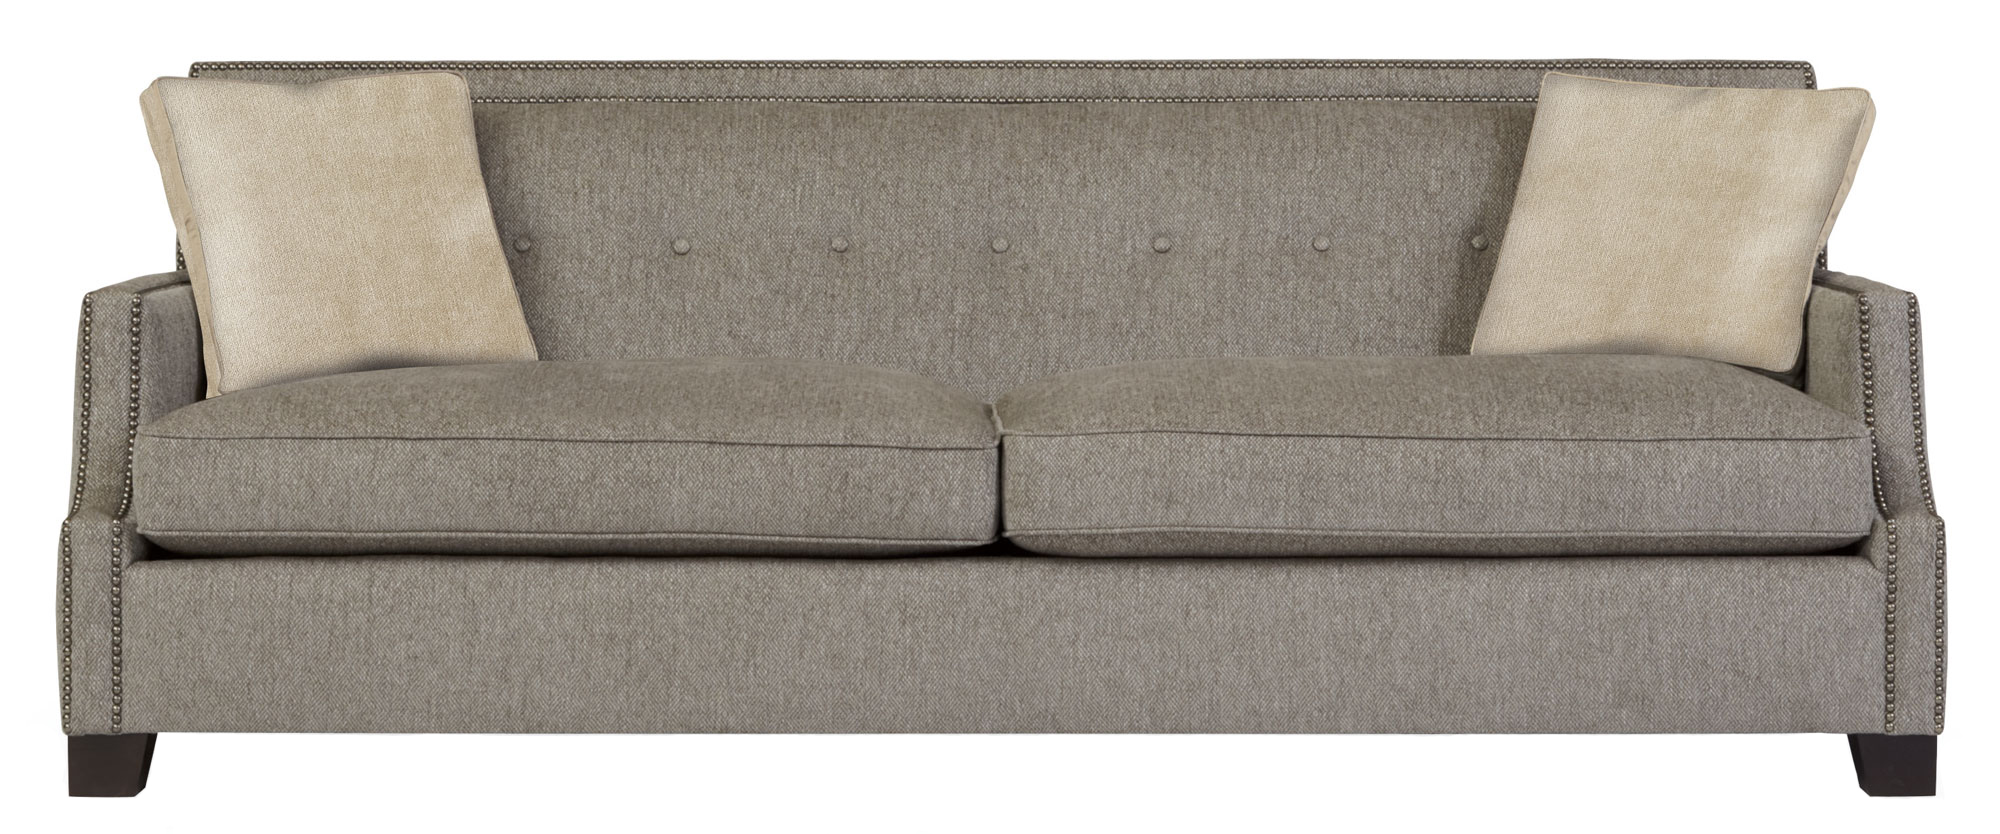 Sofa sleeper bernhardt for Bernhardt furniture